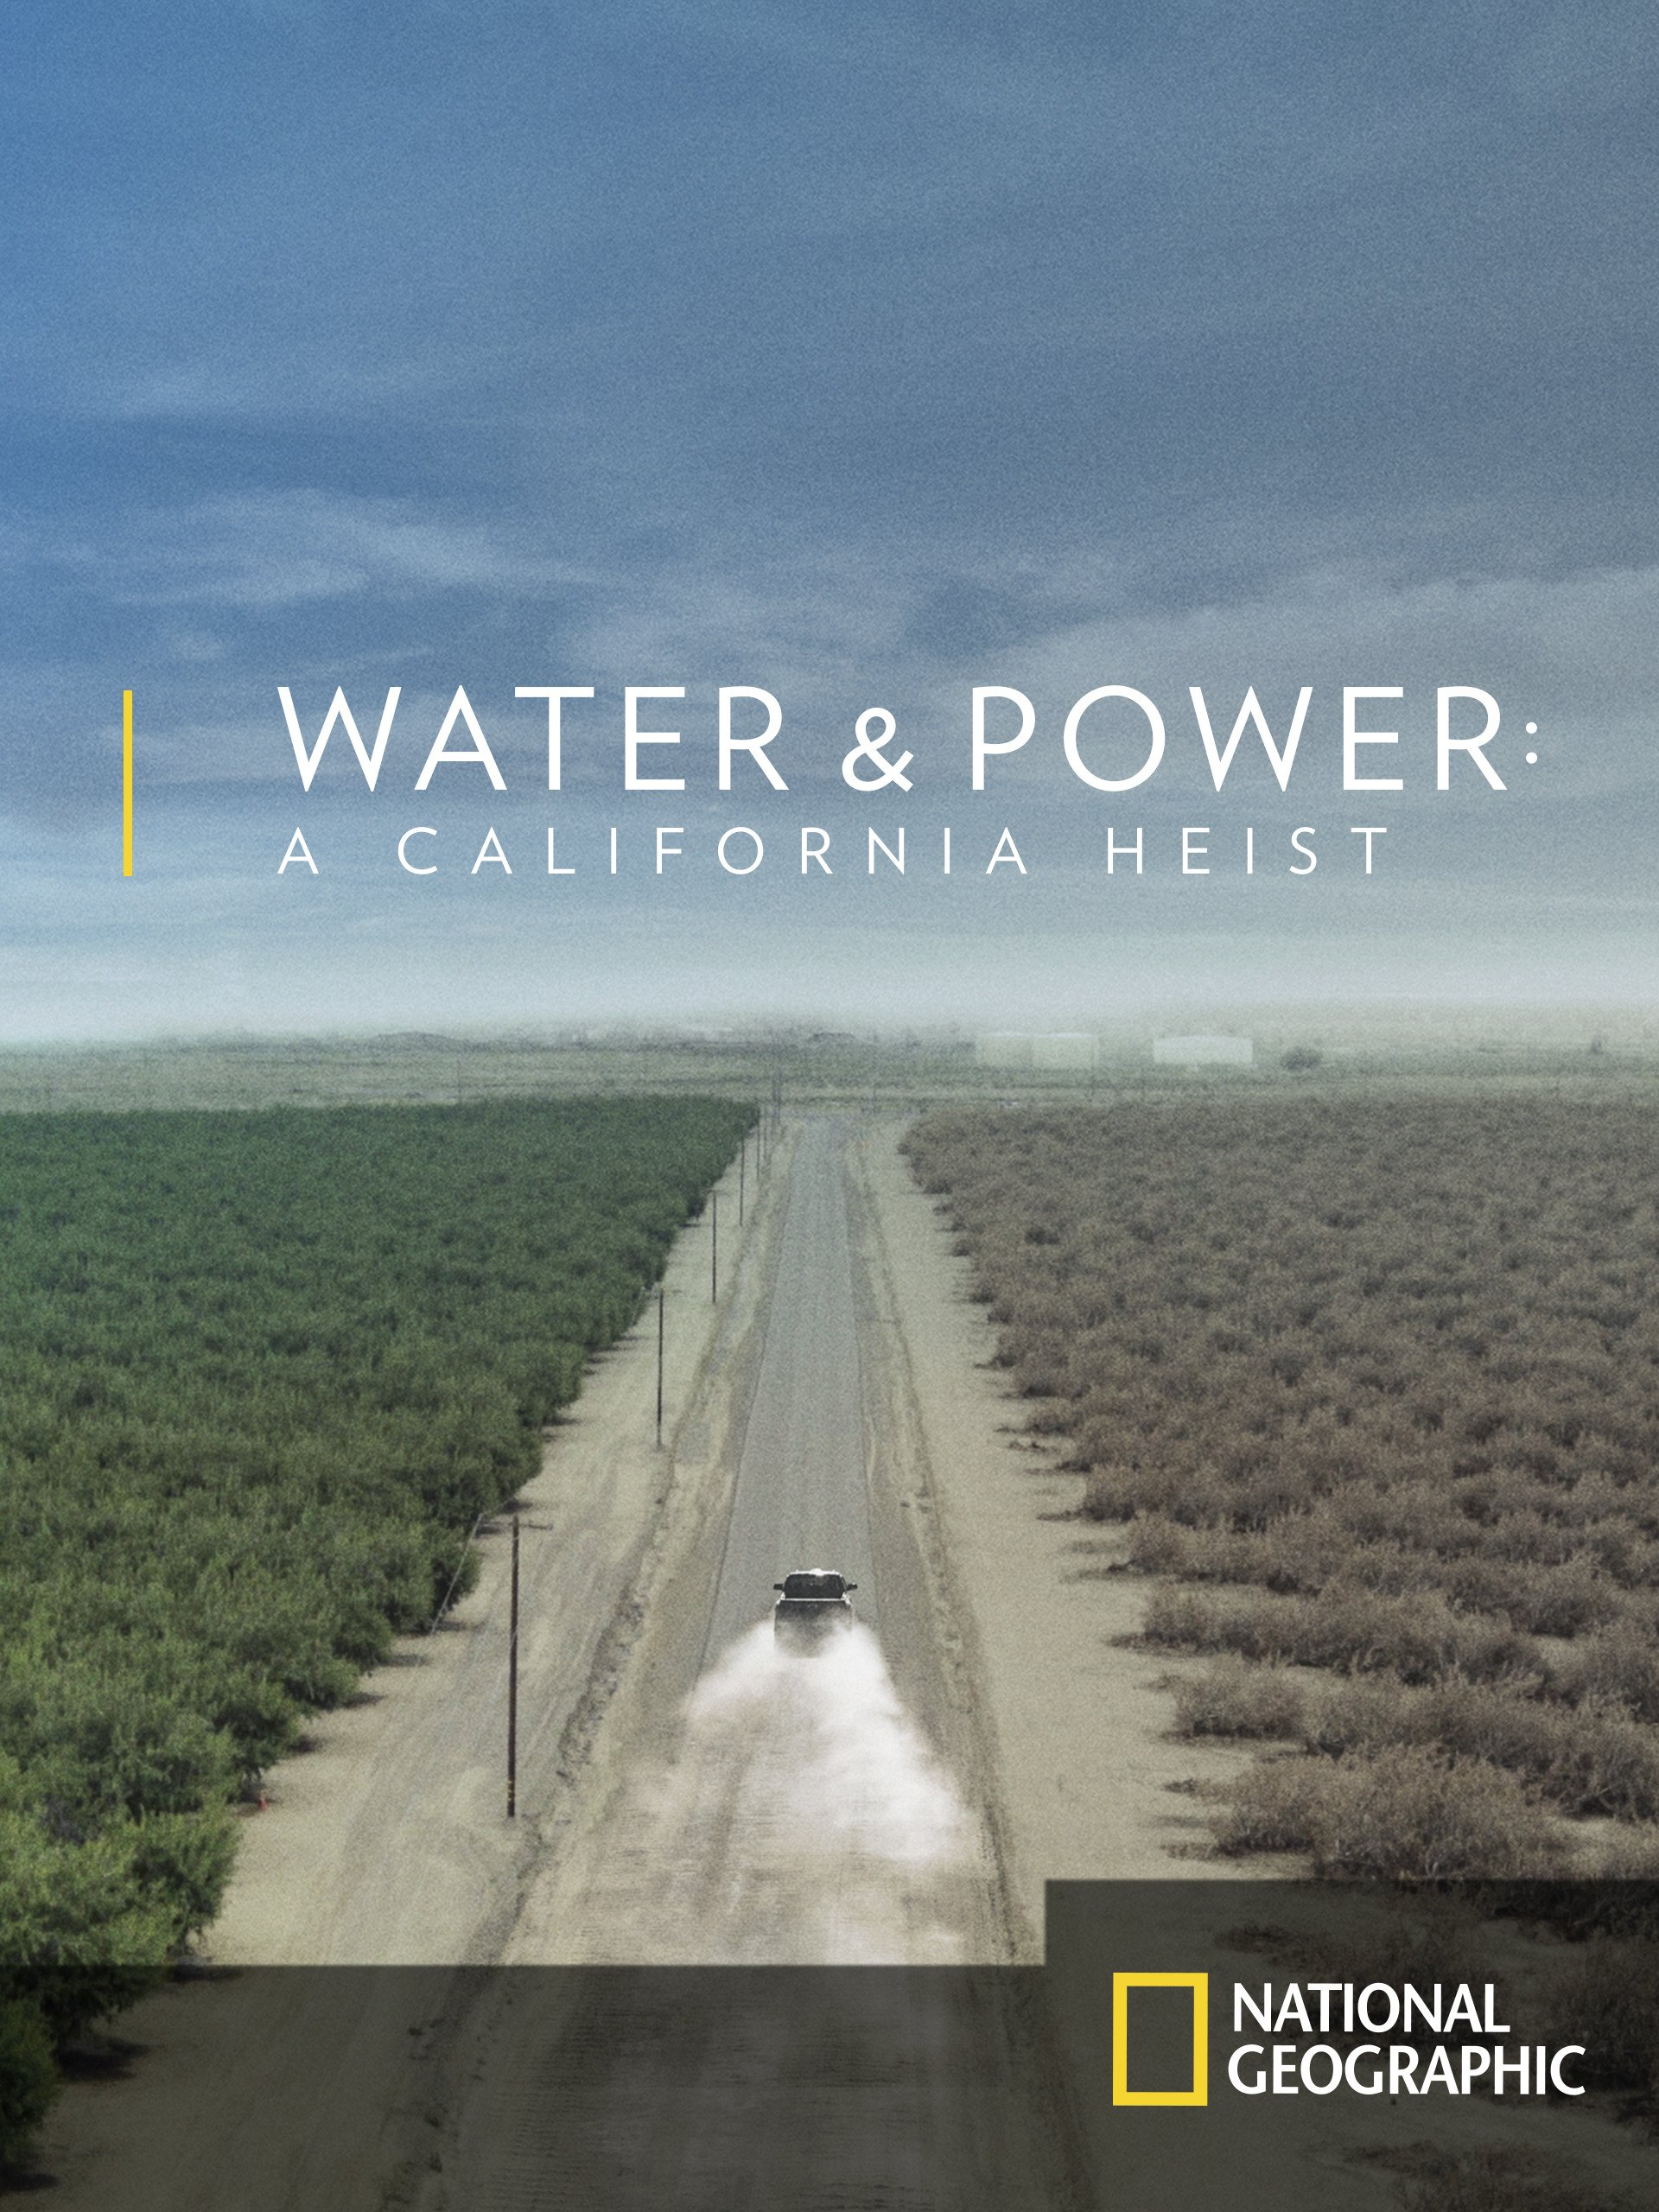 Water and Power: A California Heist (National Geographic image)